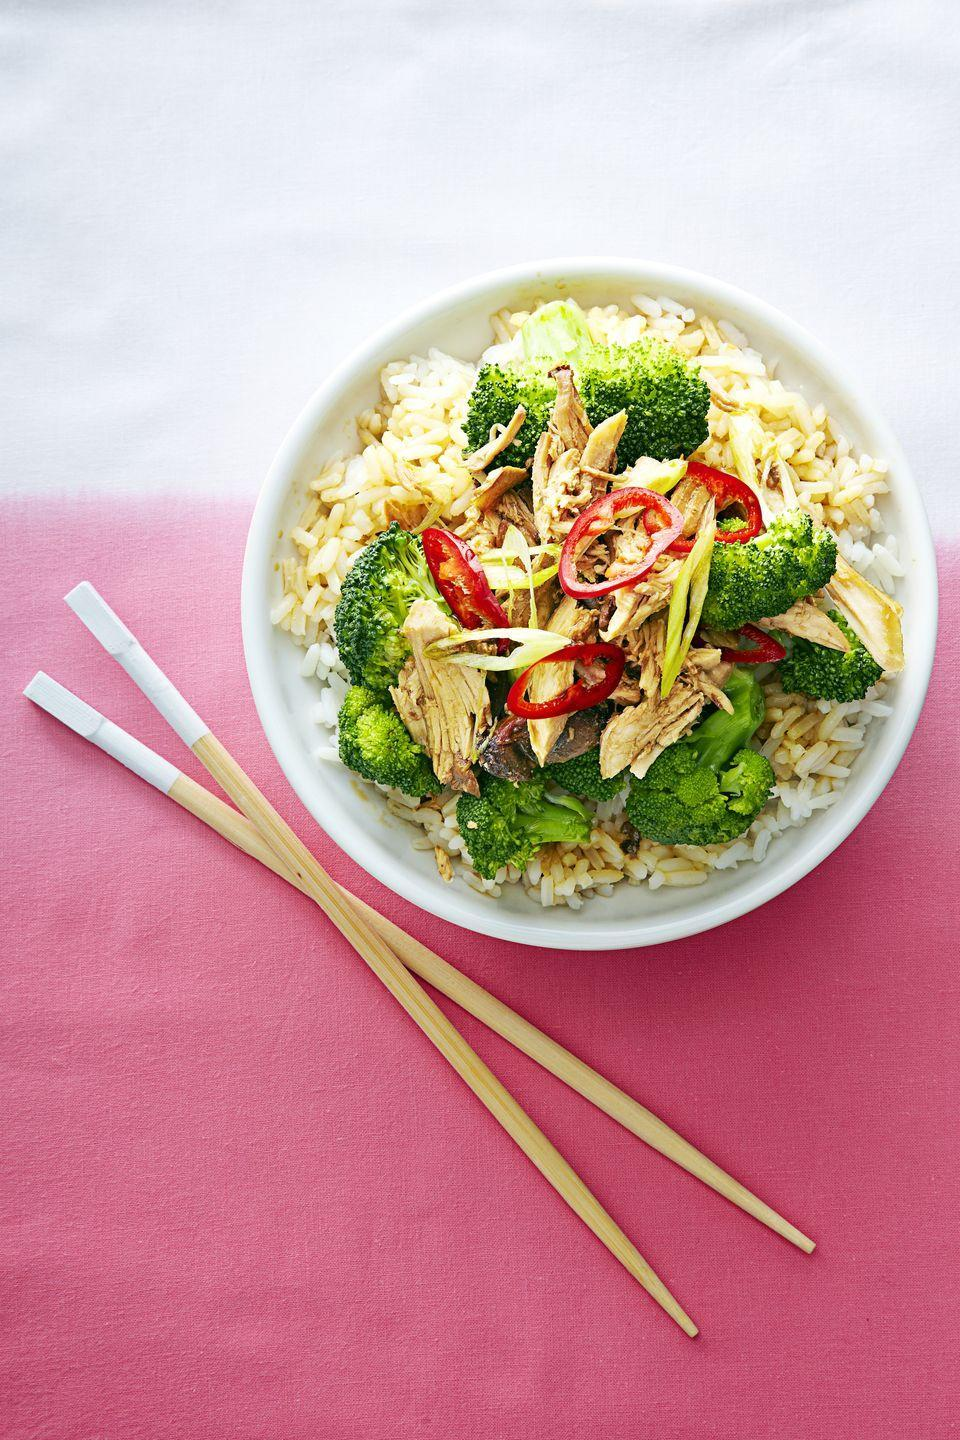 "<p>Lighten this Chinese takeout classic even further by serving over a bed of low-carb cauliflower rice instead. The cauli kind cooks faster, too.</p><p><em><a href=""https://www.goodhousekeeping.com/food-recipes/a14890/slow-cooker-sesame-garlic-chicken-recipe-ghk1214/"" rel=""nofollow noopener"" target=""_blank"" data-ylk=""slk:Get the recipe for Slow Cooker Sesame-Garlic Chicken »"" class=""link rapid-noclick-resp"">Get the recipe for Slow Cooker Sesame-Garlic Chicken »</a></em><br></p>"